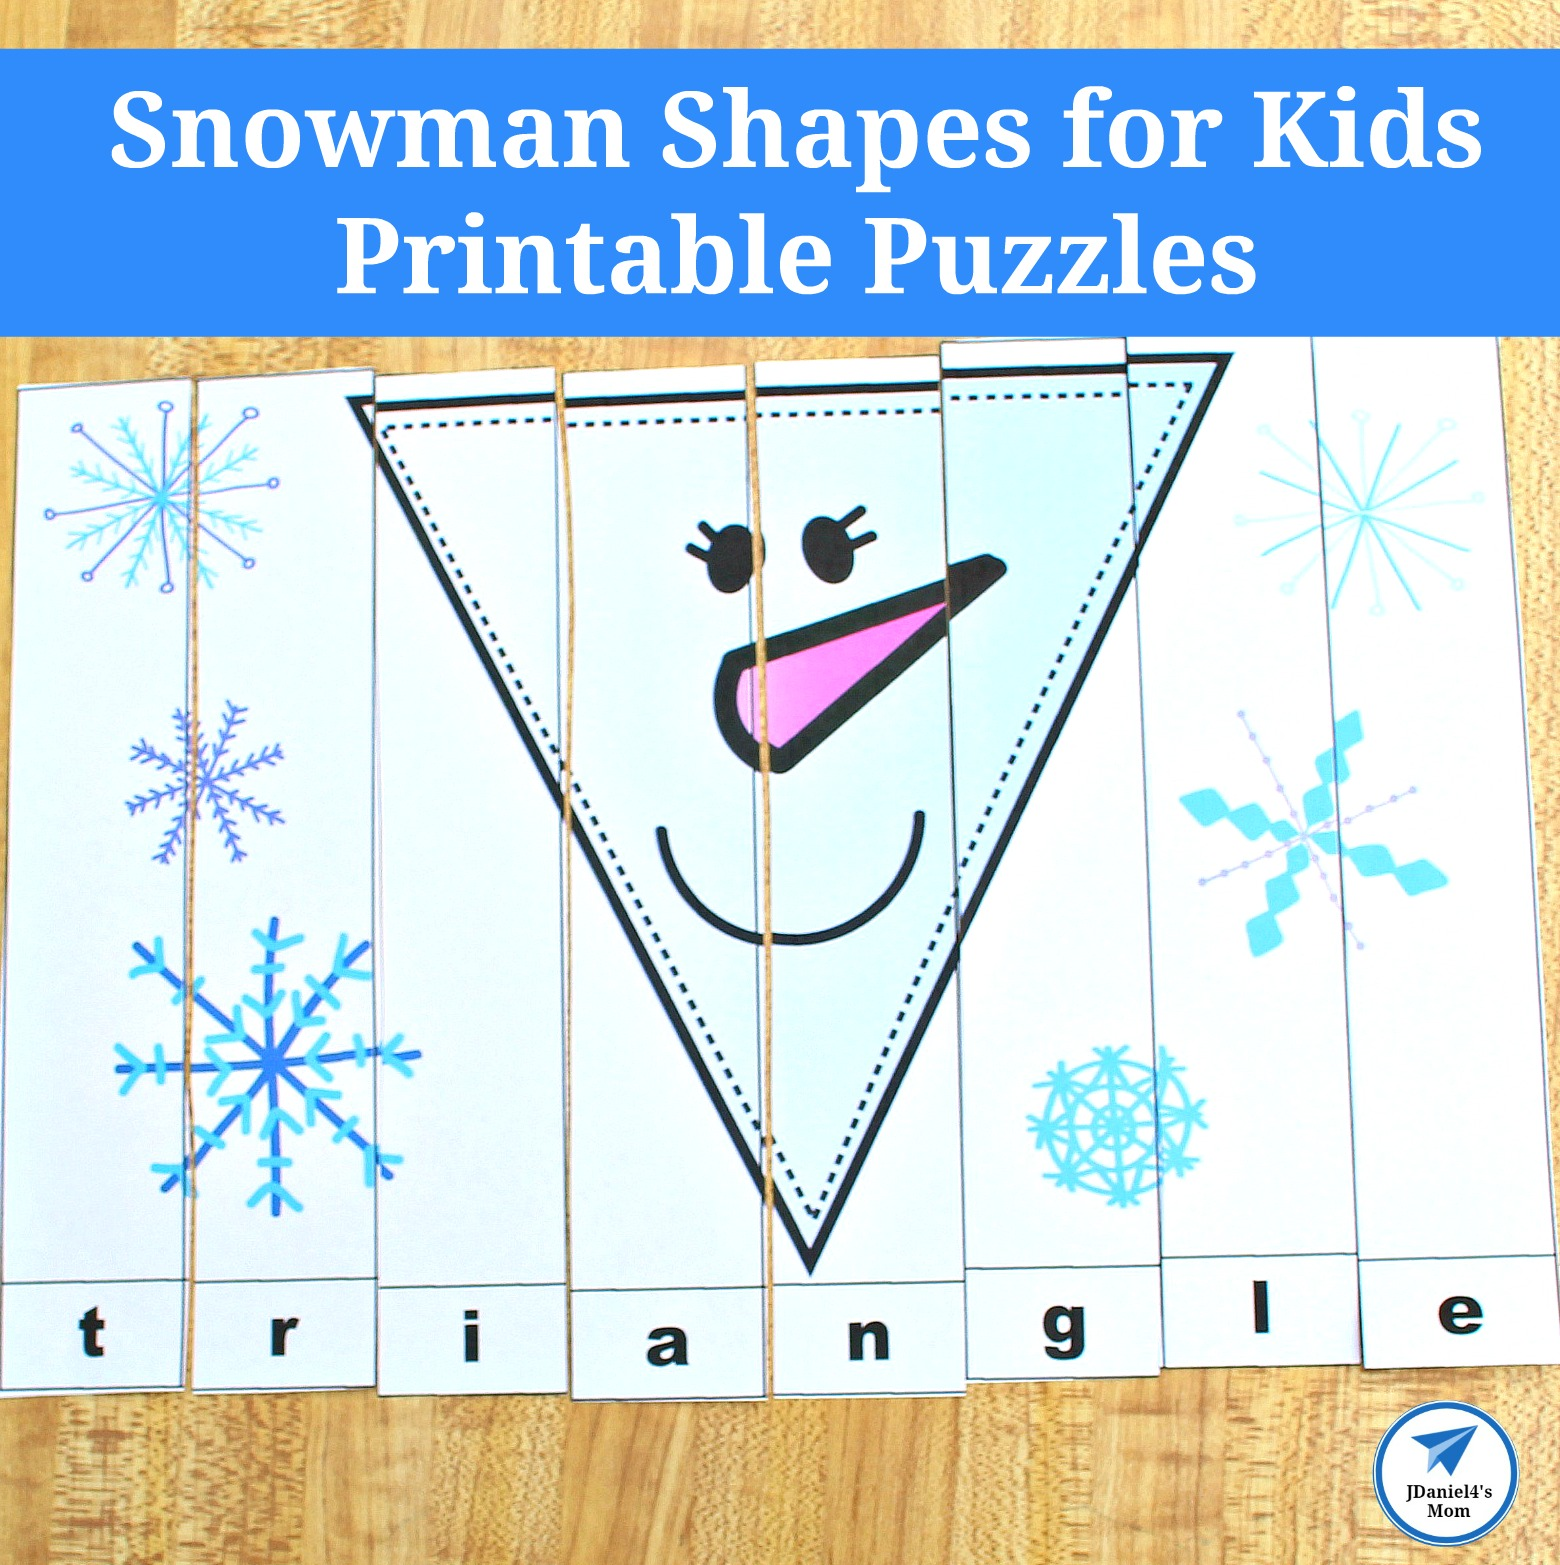 image regarding Printable Puzzles for Kids named Snowman Styles for Little ones Printable Puzzles - JDaniel4s Mother